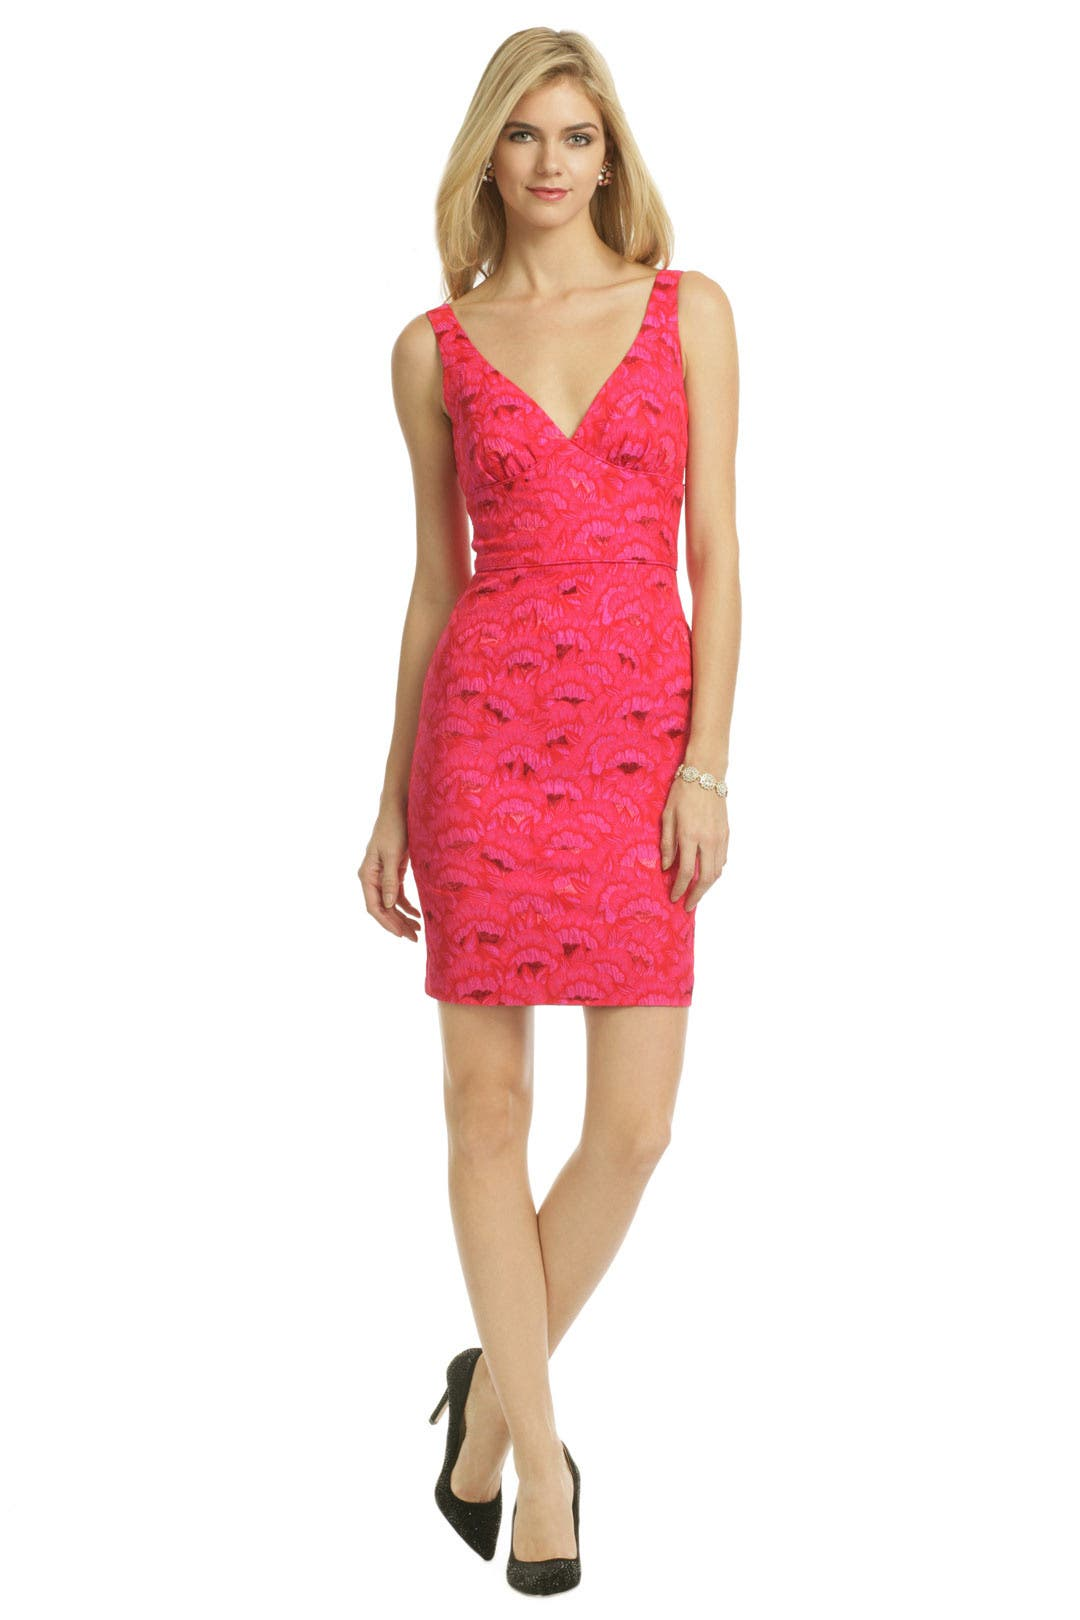 Pink Oahu Fan Dress by Trina Turk